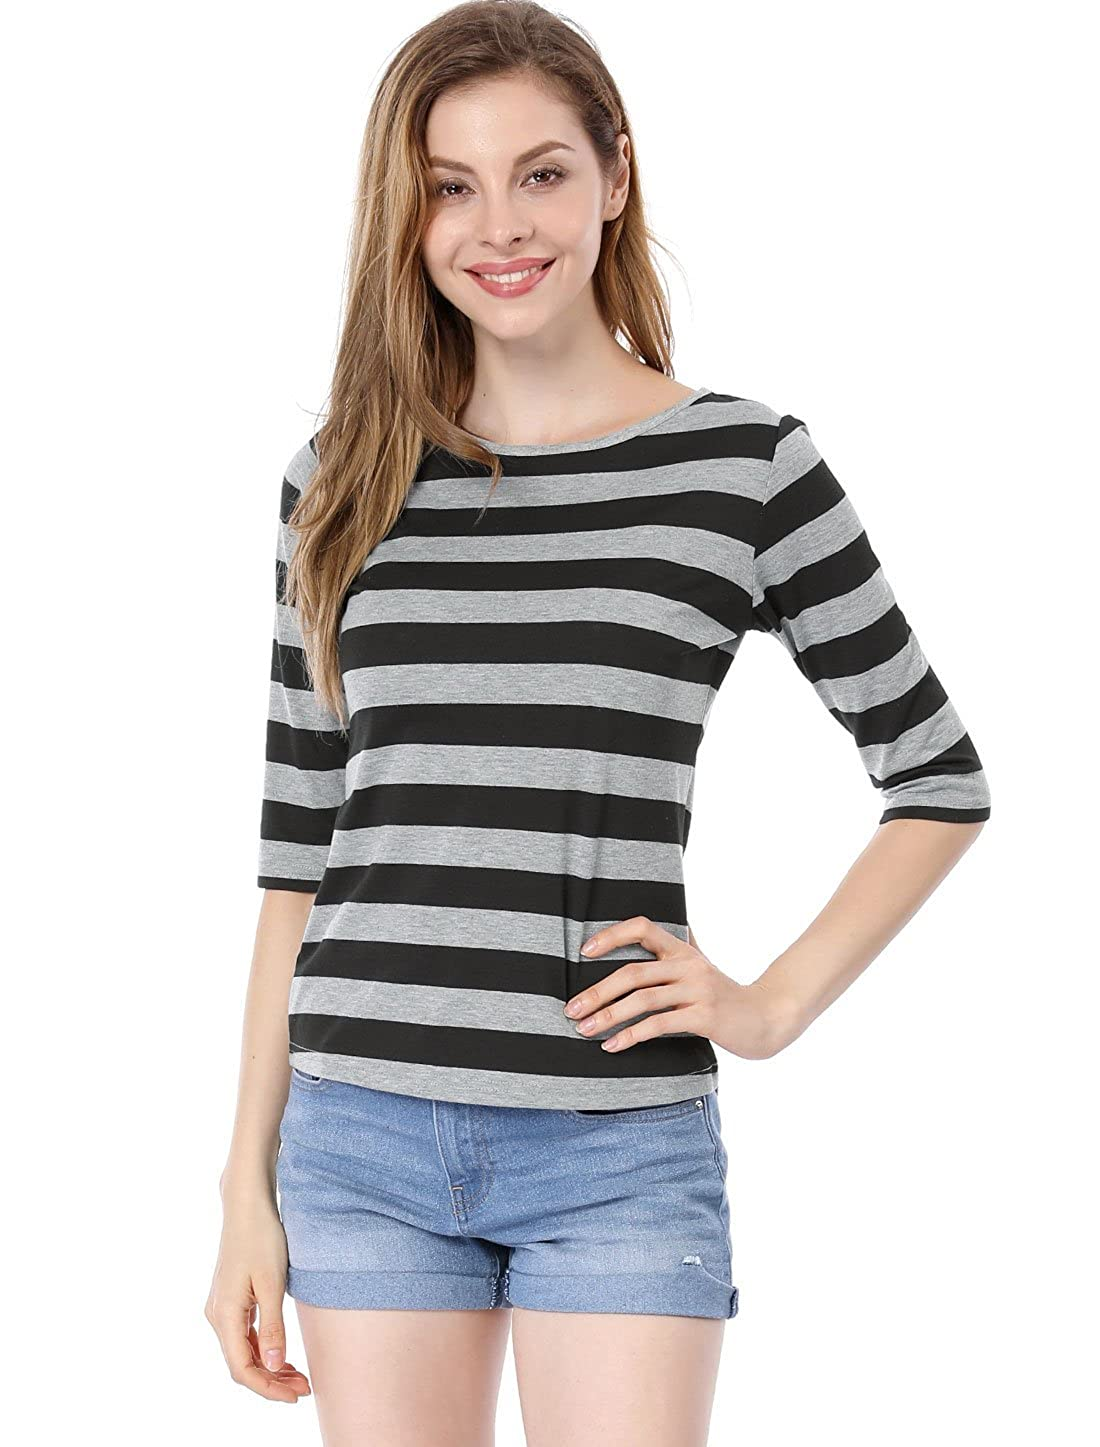 dabbe8ca31c Allegra K Women's Contrast Color Half Length Sleeve Stripes Tops Shirt at  Amazon Women's Clothing store: